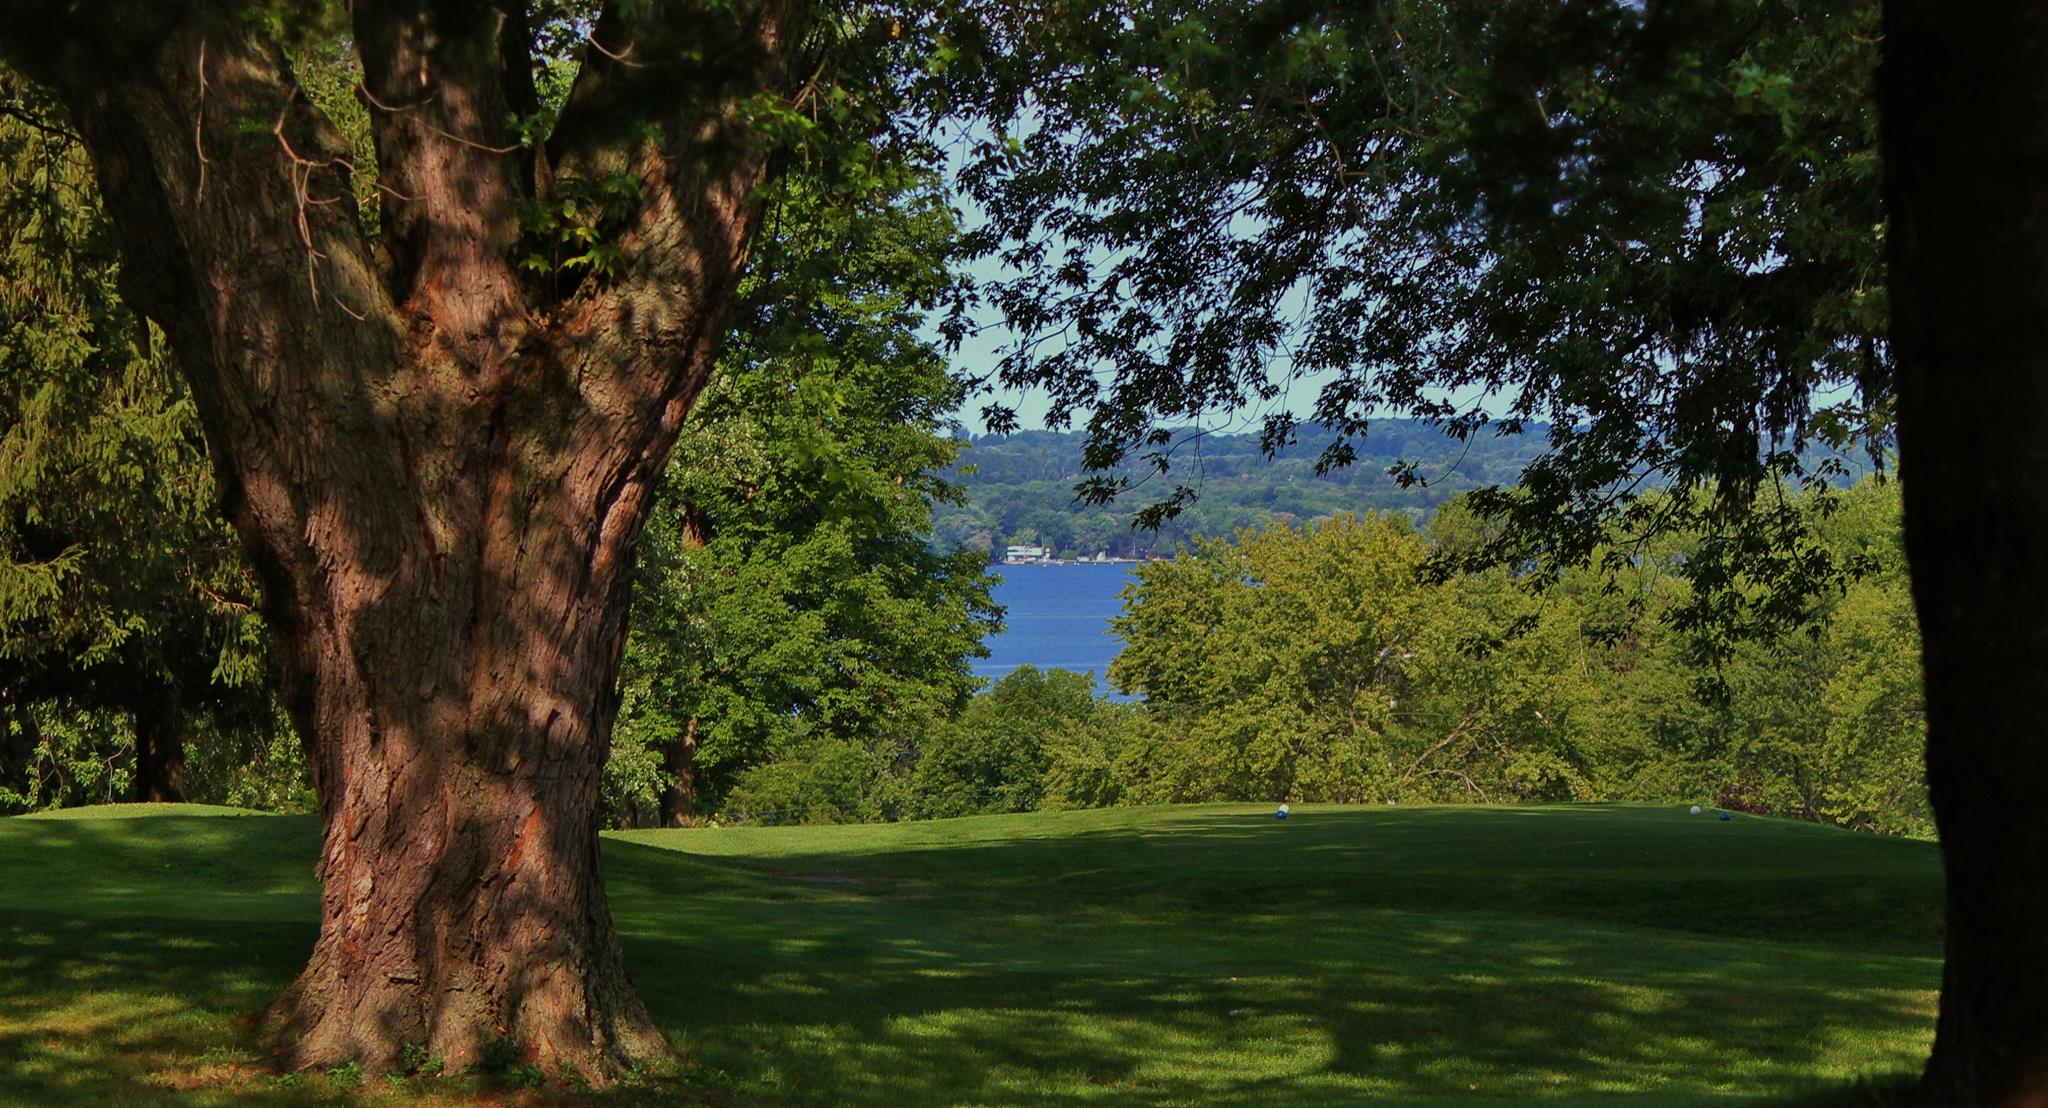 Orchard Beach - 9th hole - lake view